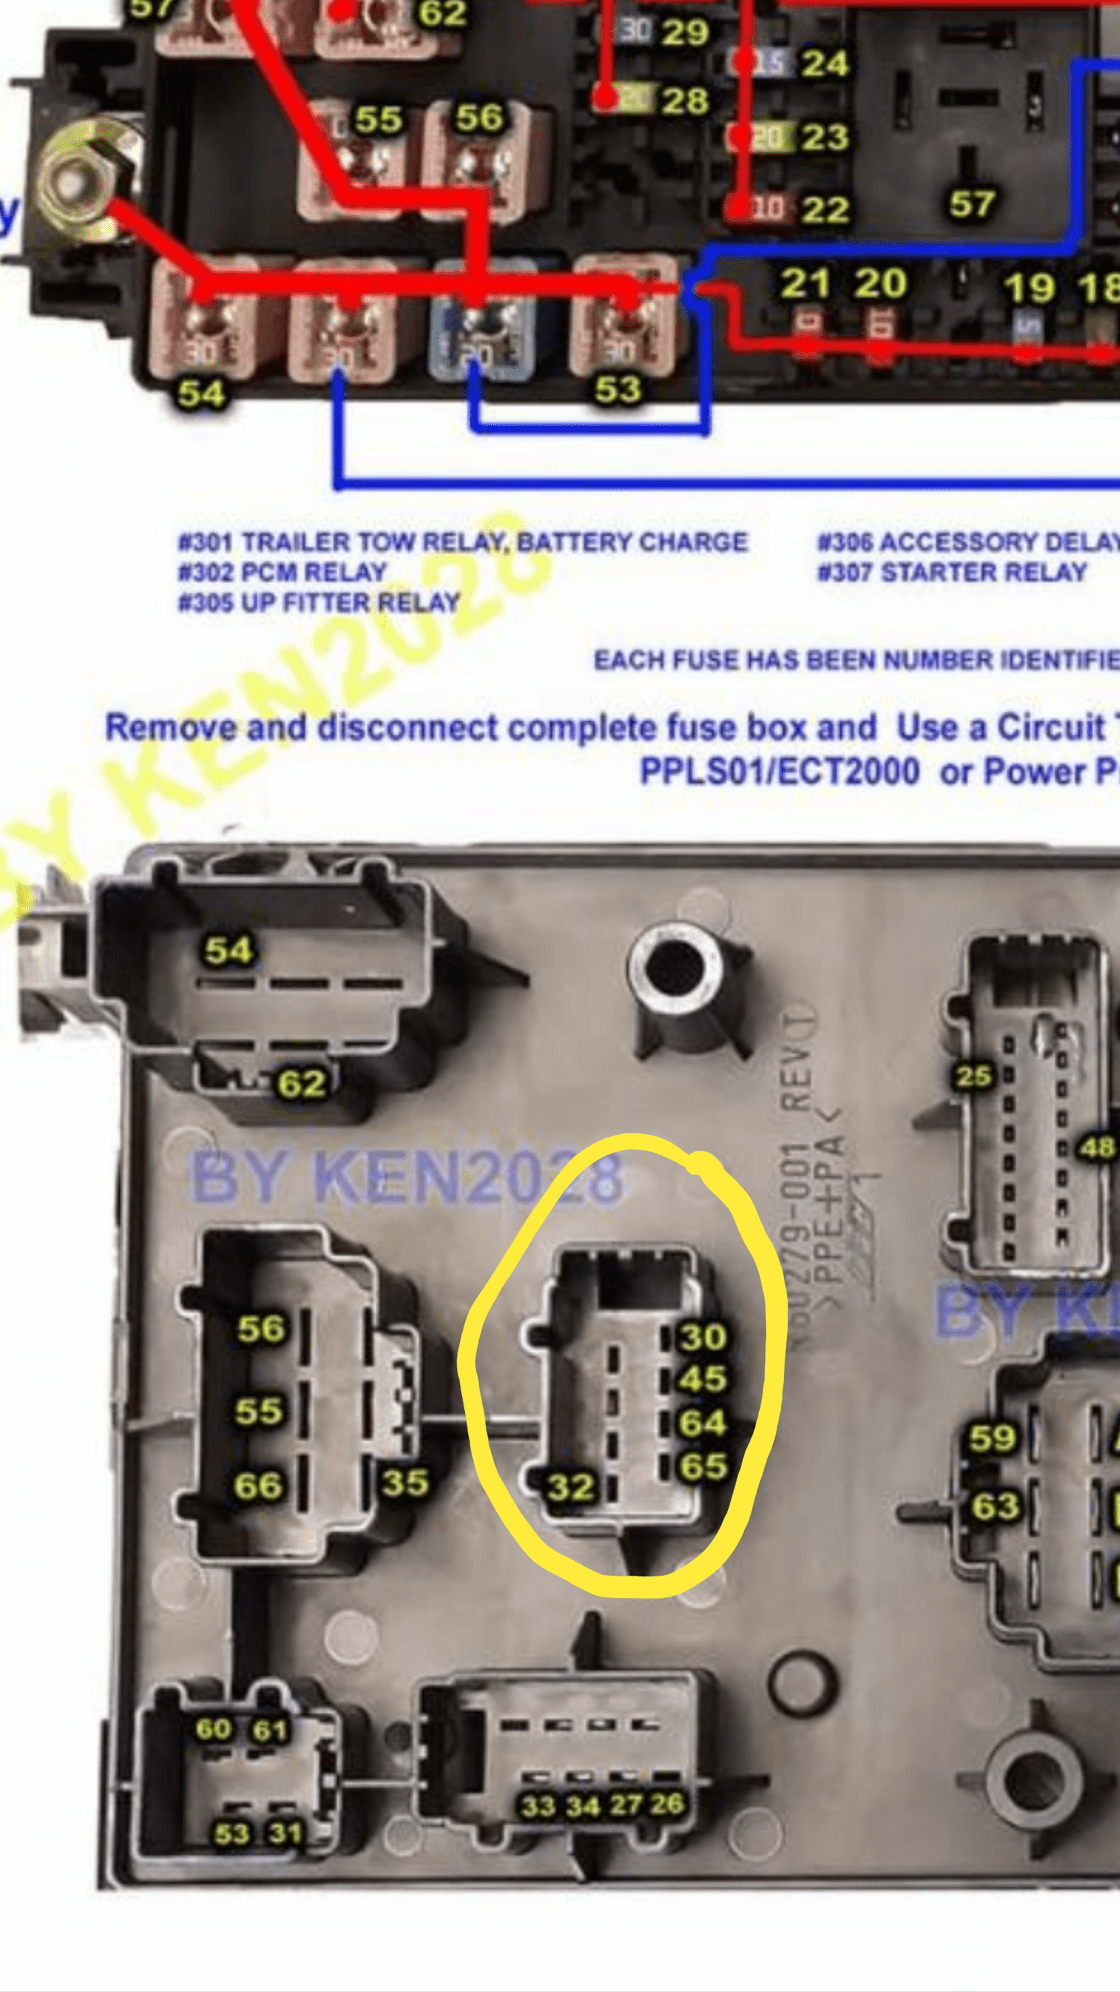 hight resolution of  i m just at a loss with the switchs relay box connecting to my fuse panel in the back at the spot i m asking about any help would really be great